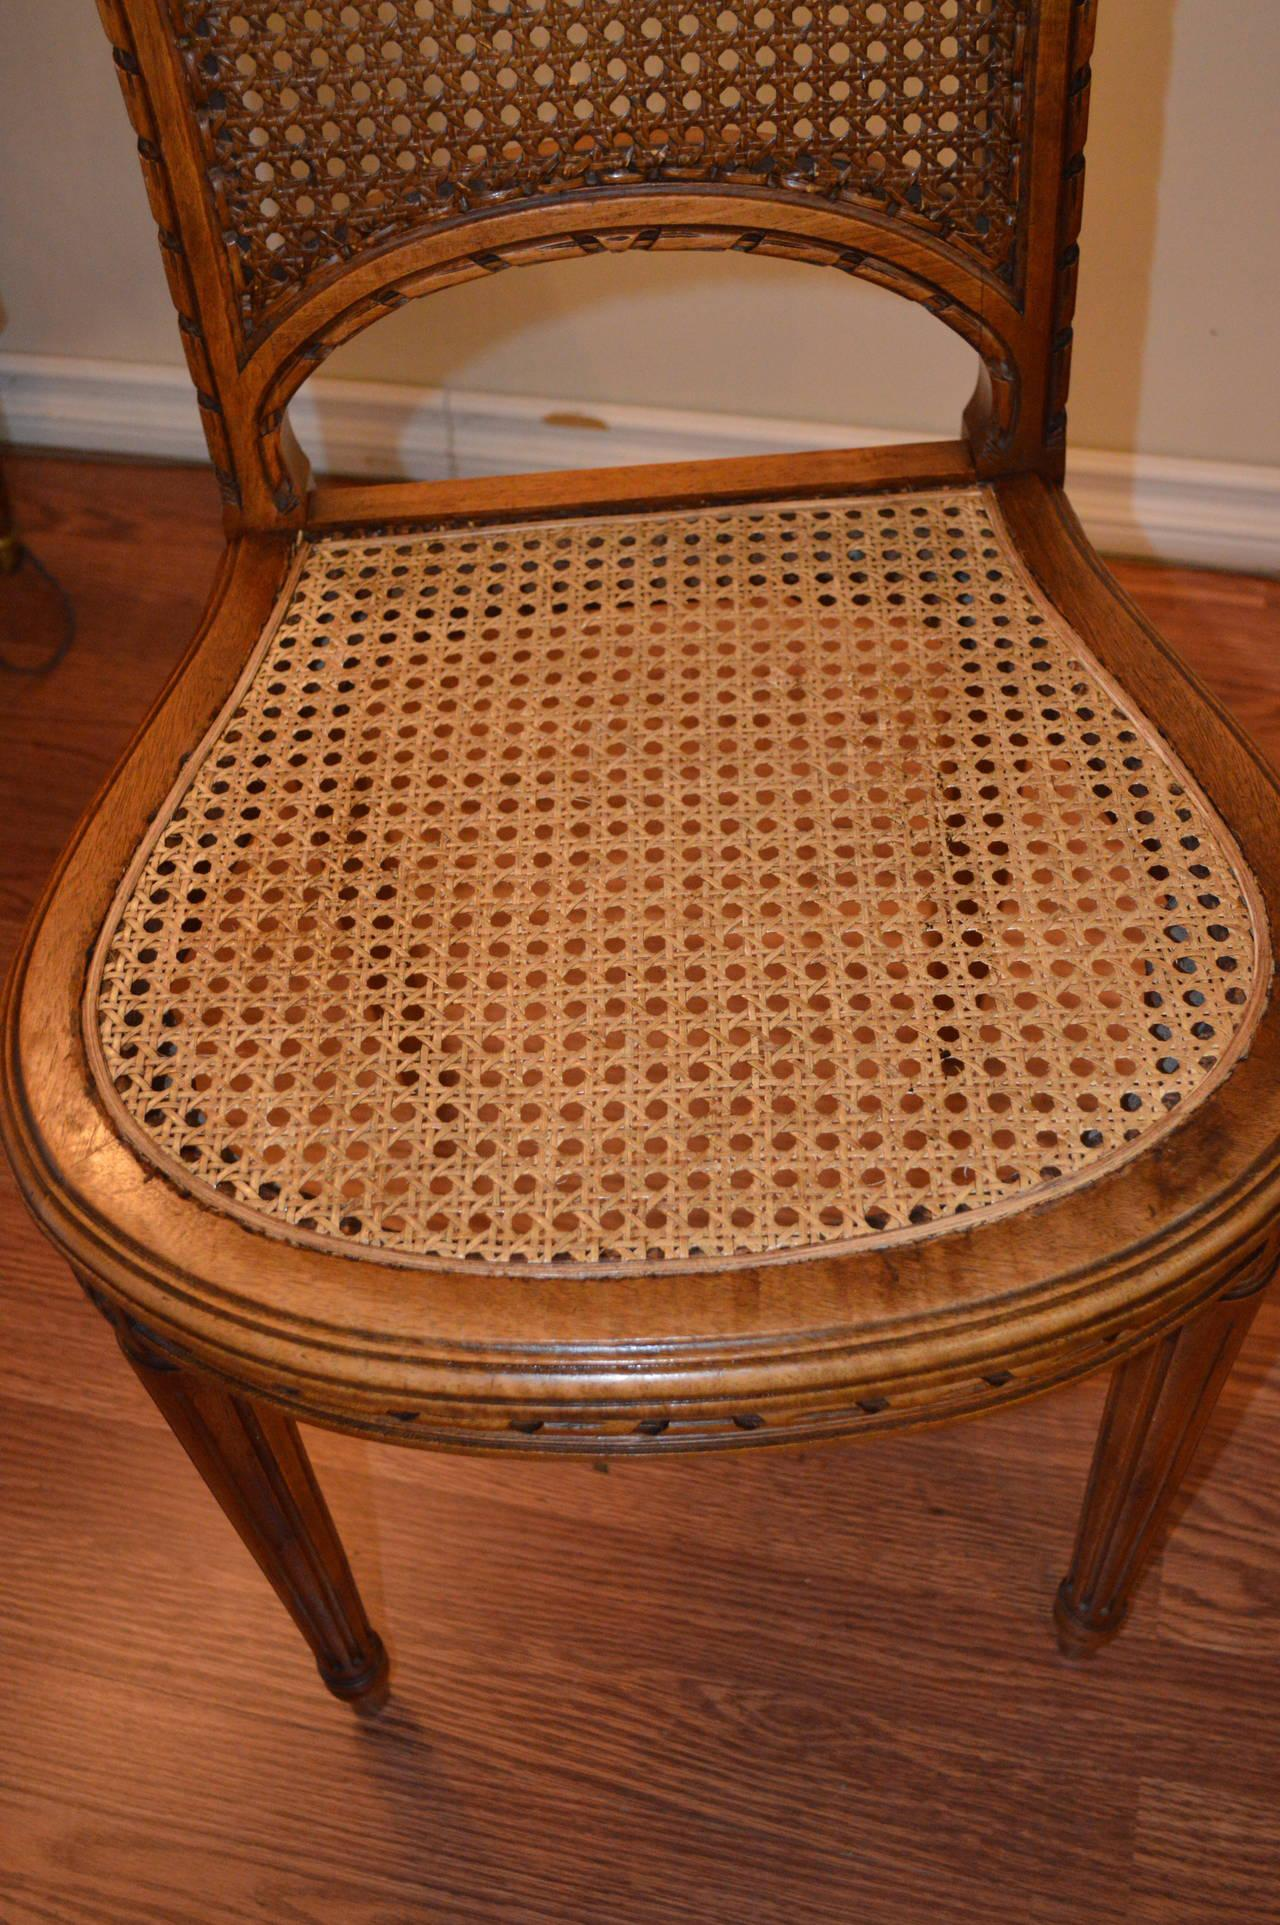 Caning Set Of 8 Louis XVI Style Oak Dining Chairs With Caned Back And Seat.